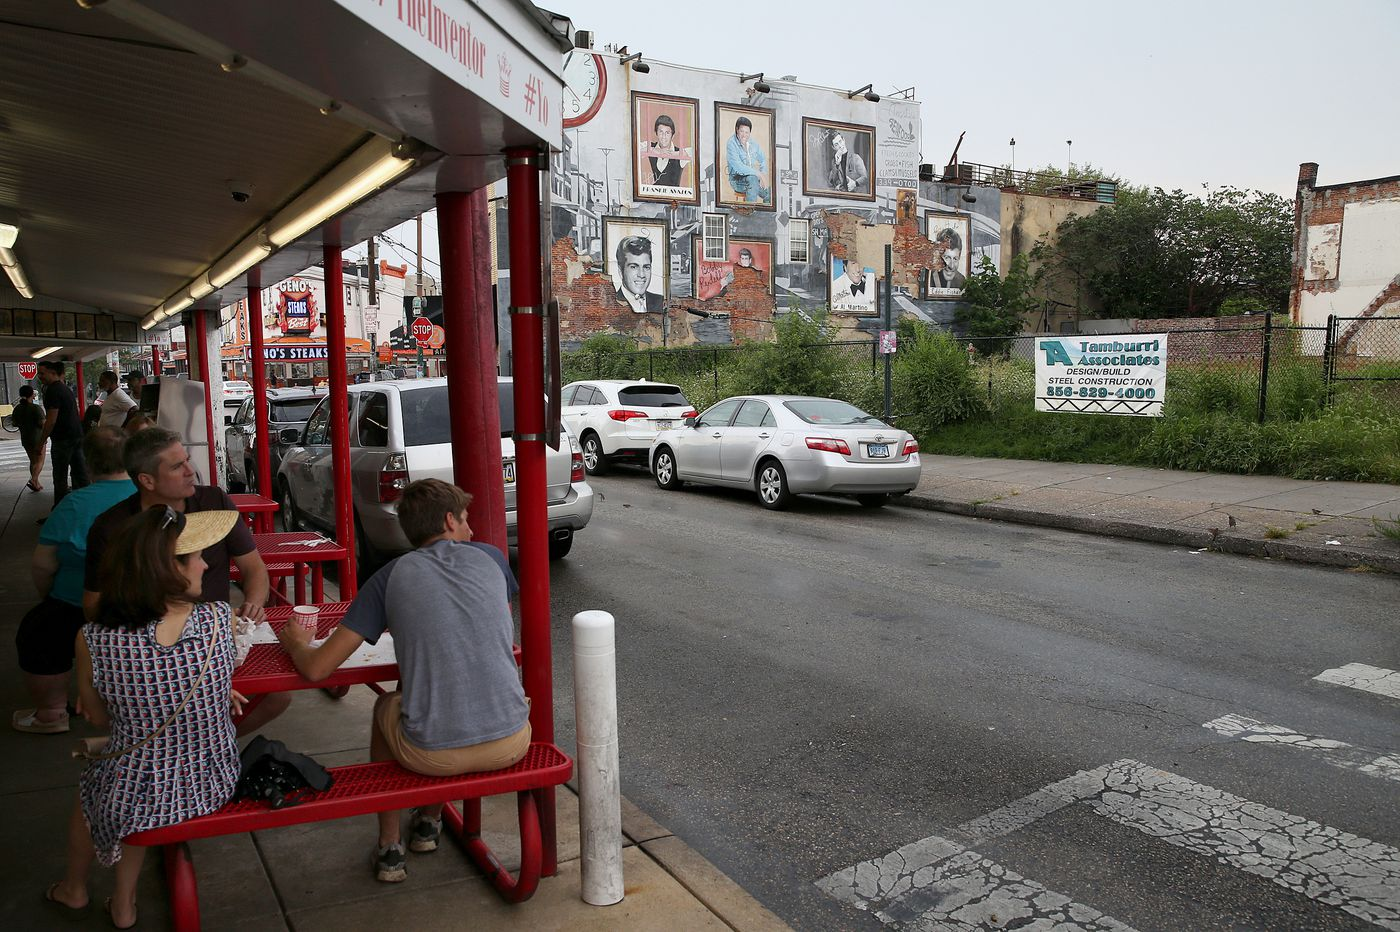 That empty lot across from Pat's and Geno's? Apartments, rowhouses likely soon at Philly's cheesesteak corner.